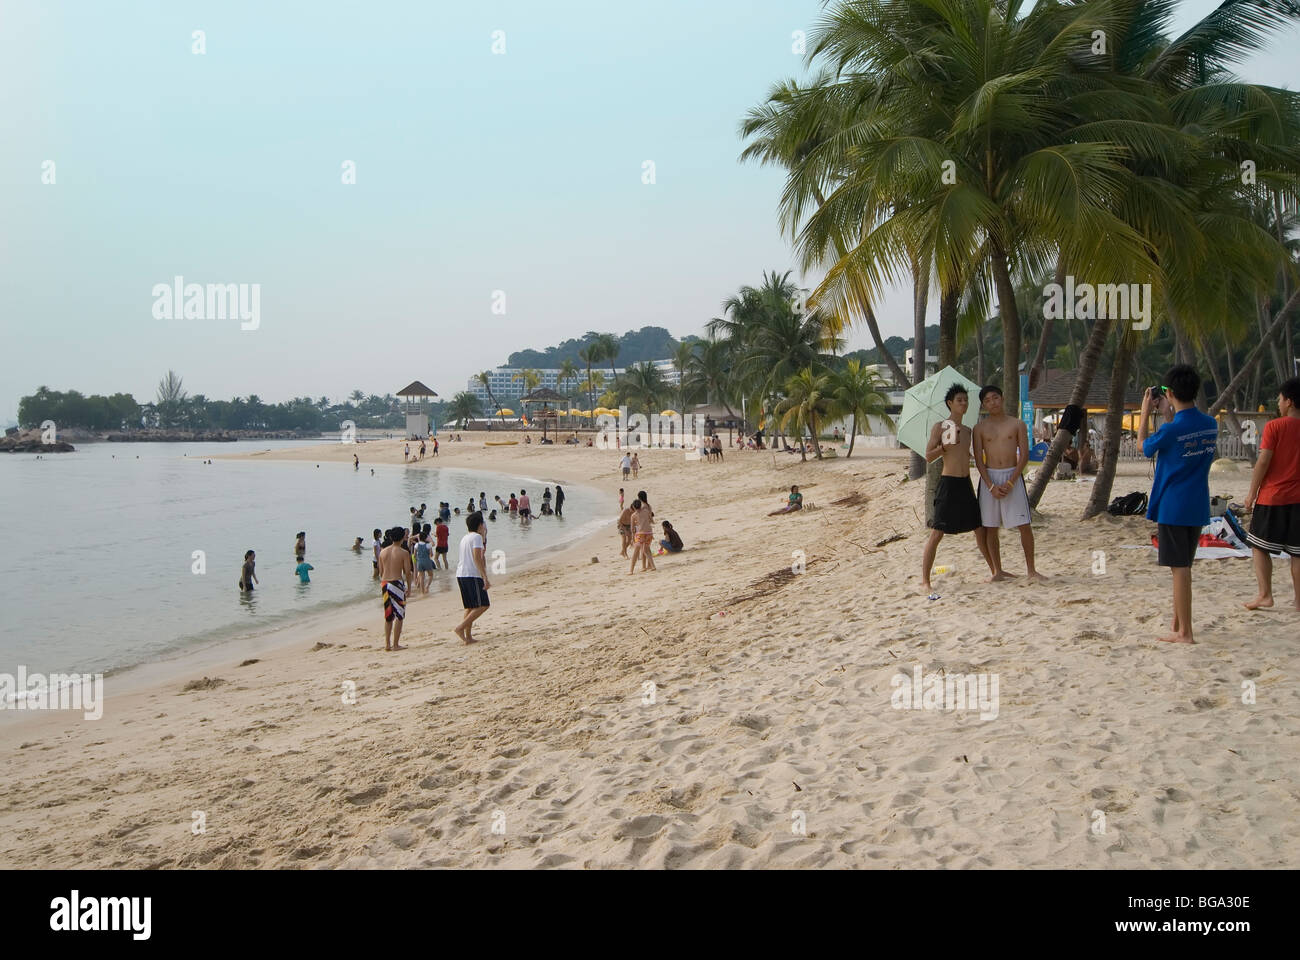 Sentosa Island beach off Singapore with people posing for a photographer holding an umbrella - Stock Image